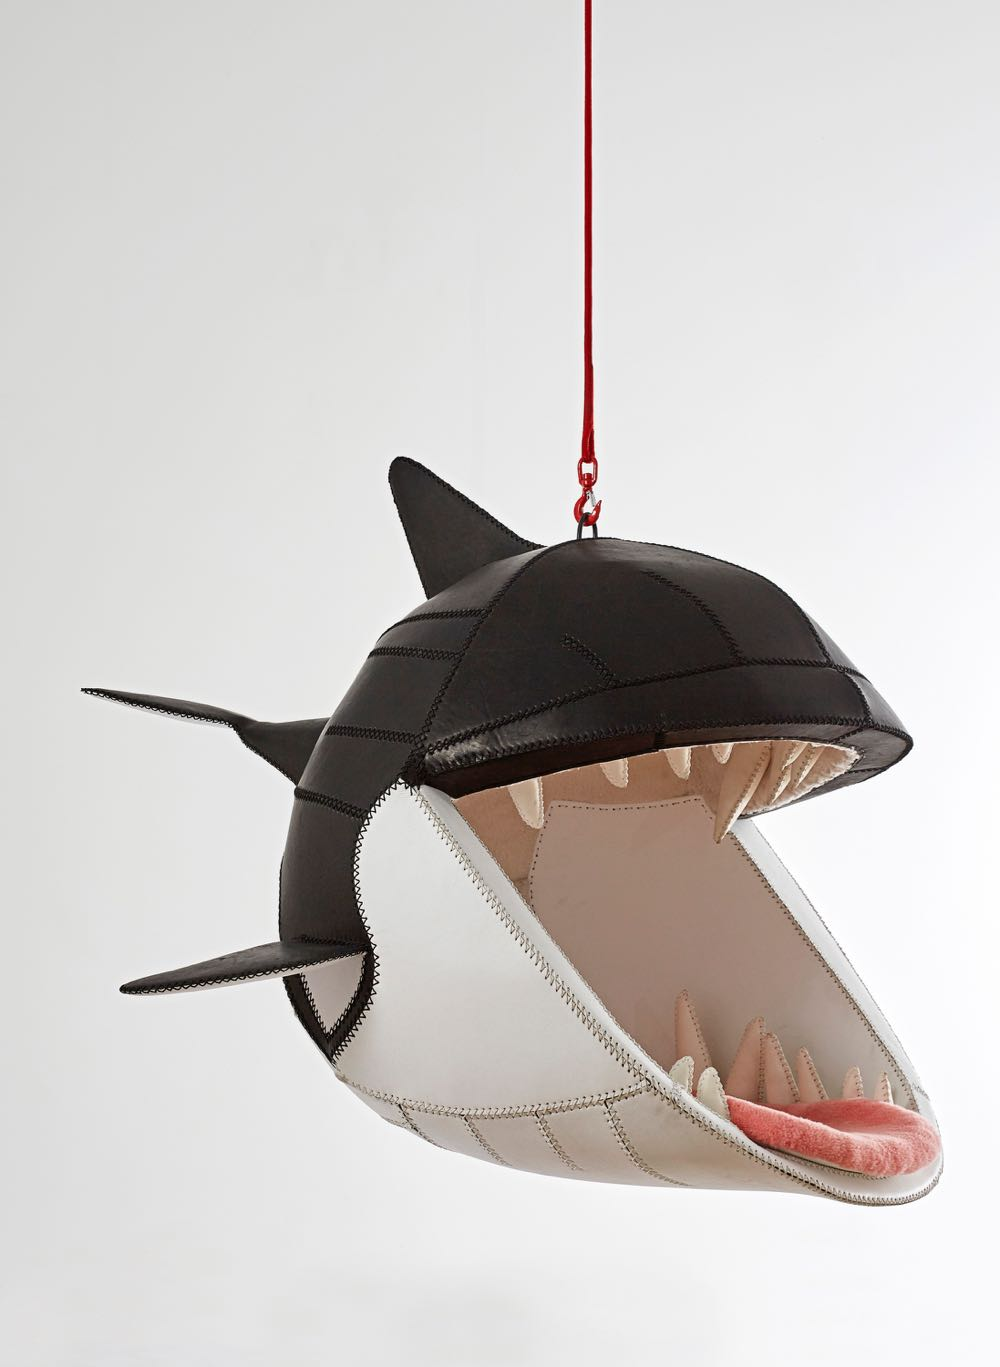 Porky Hefer's 'Fiona Blackfish' hanging chair designed in 2015, manufactured in 2016 in Leather, steel and sheepskin 170 x 164 x 135 cm